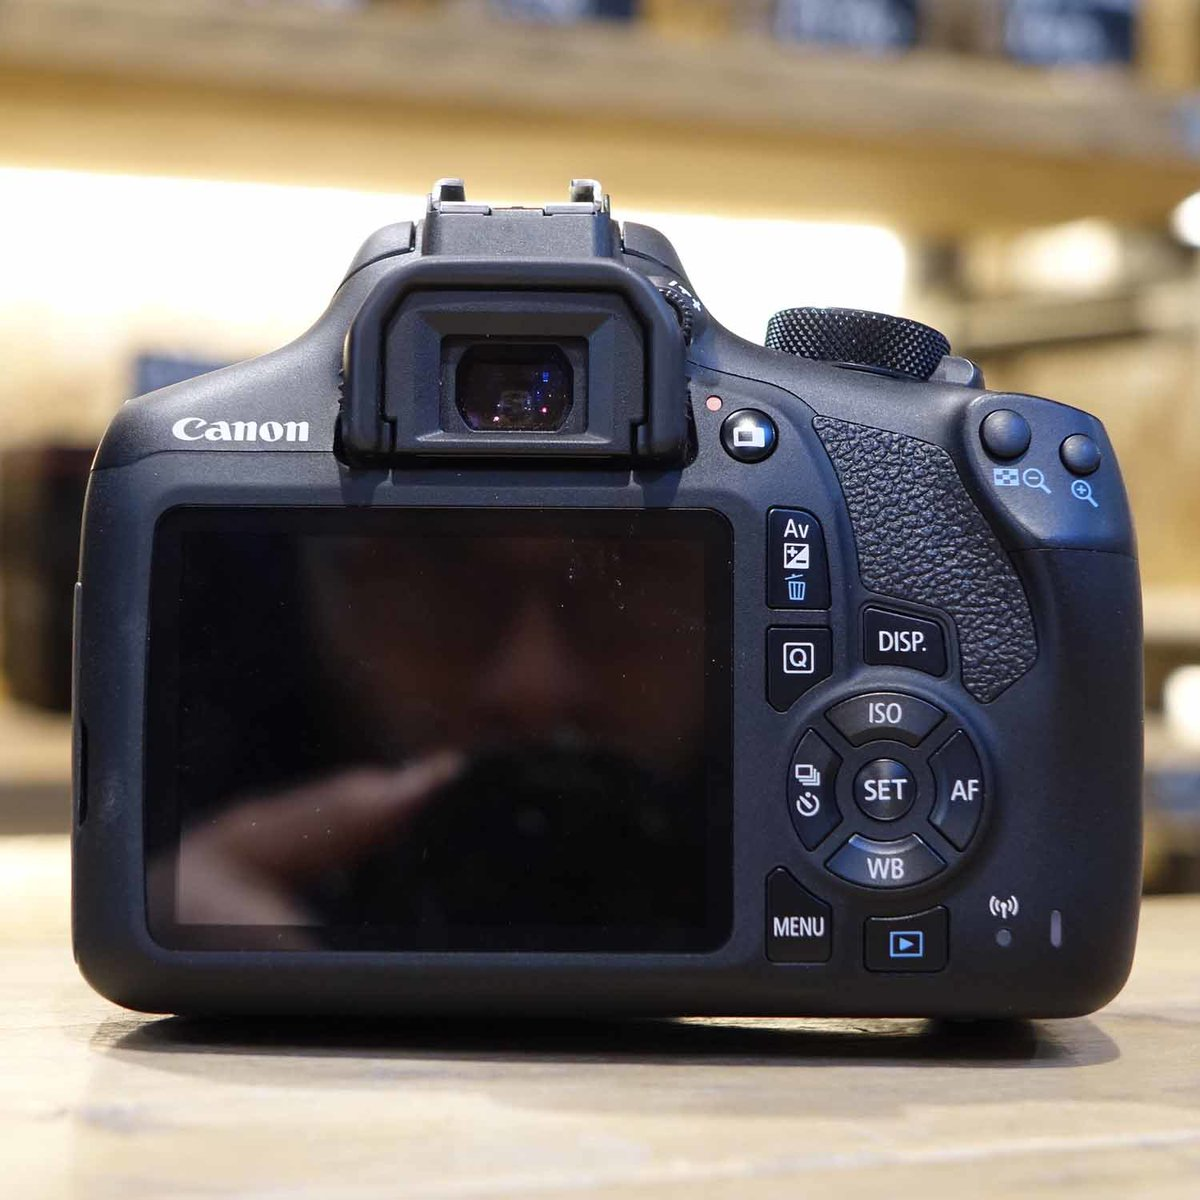 Harrisoncameras Used On Twitter Just In Canon Eos 1300d Dslr Kit 18 55 Iii Camera With 55mm Lens 270 Https Tco Jigrz4tldm Photography Dq0roujdai